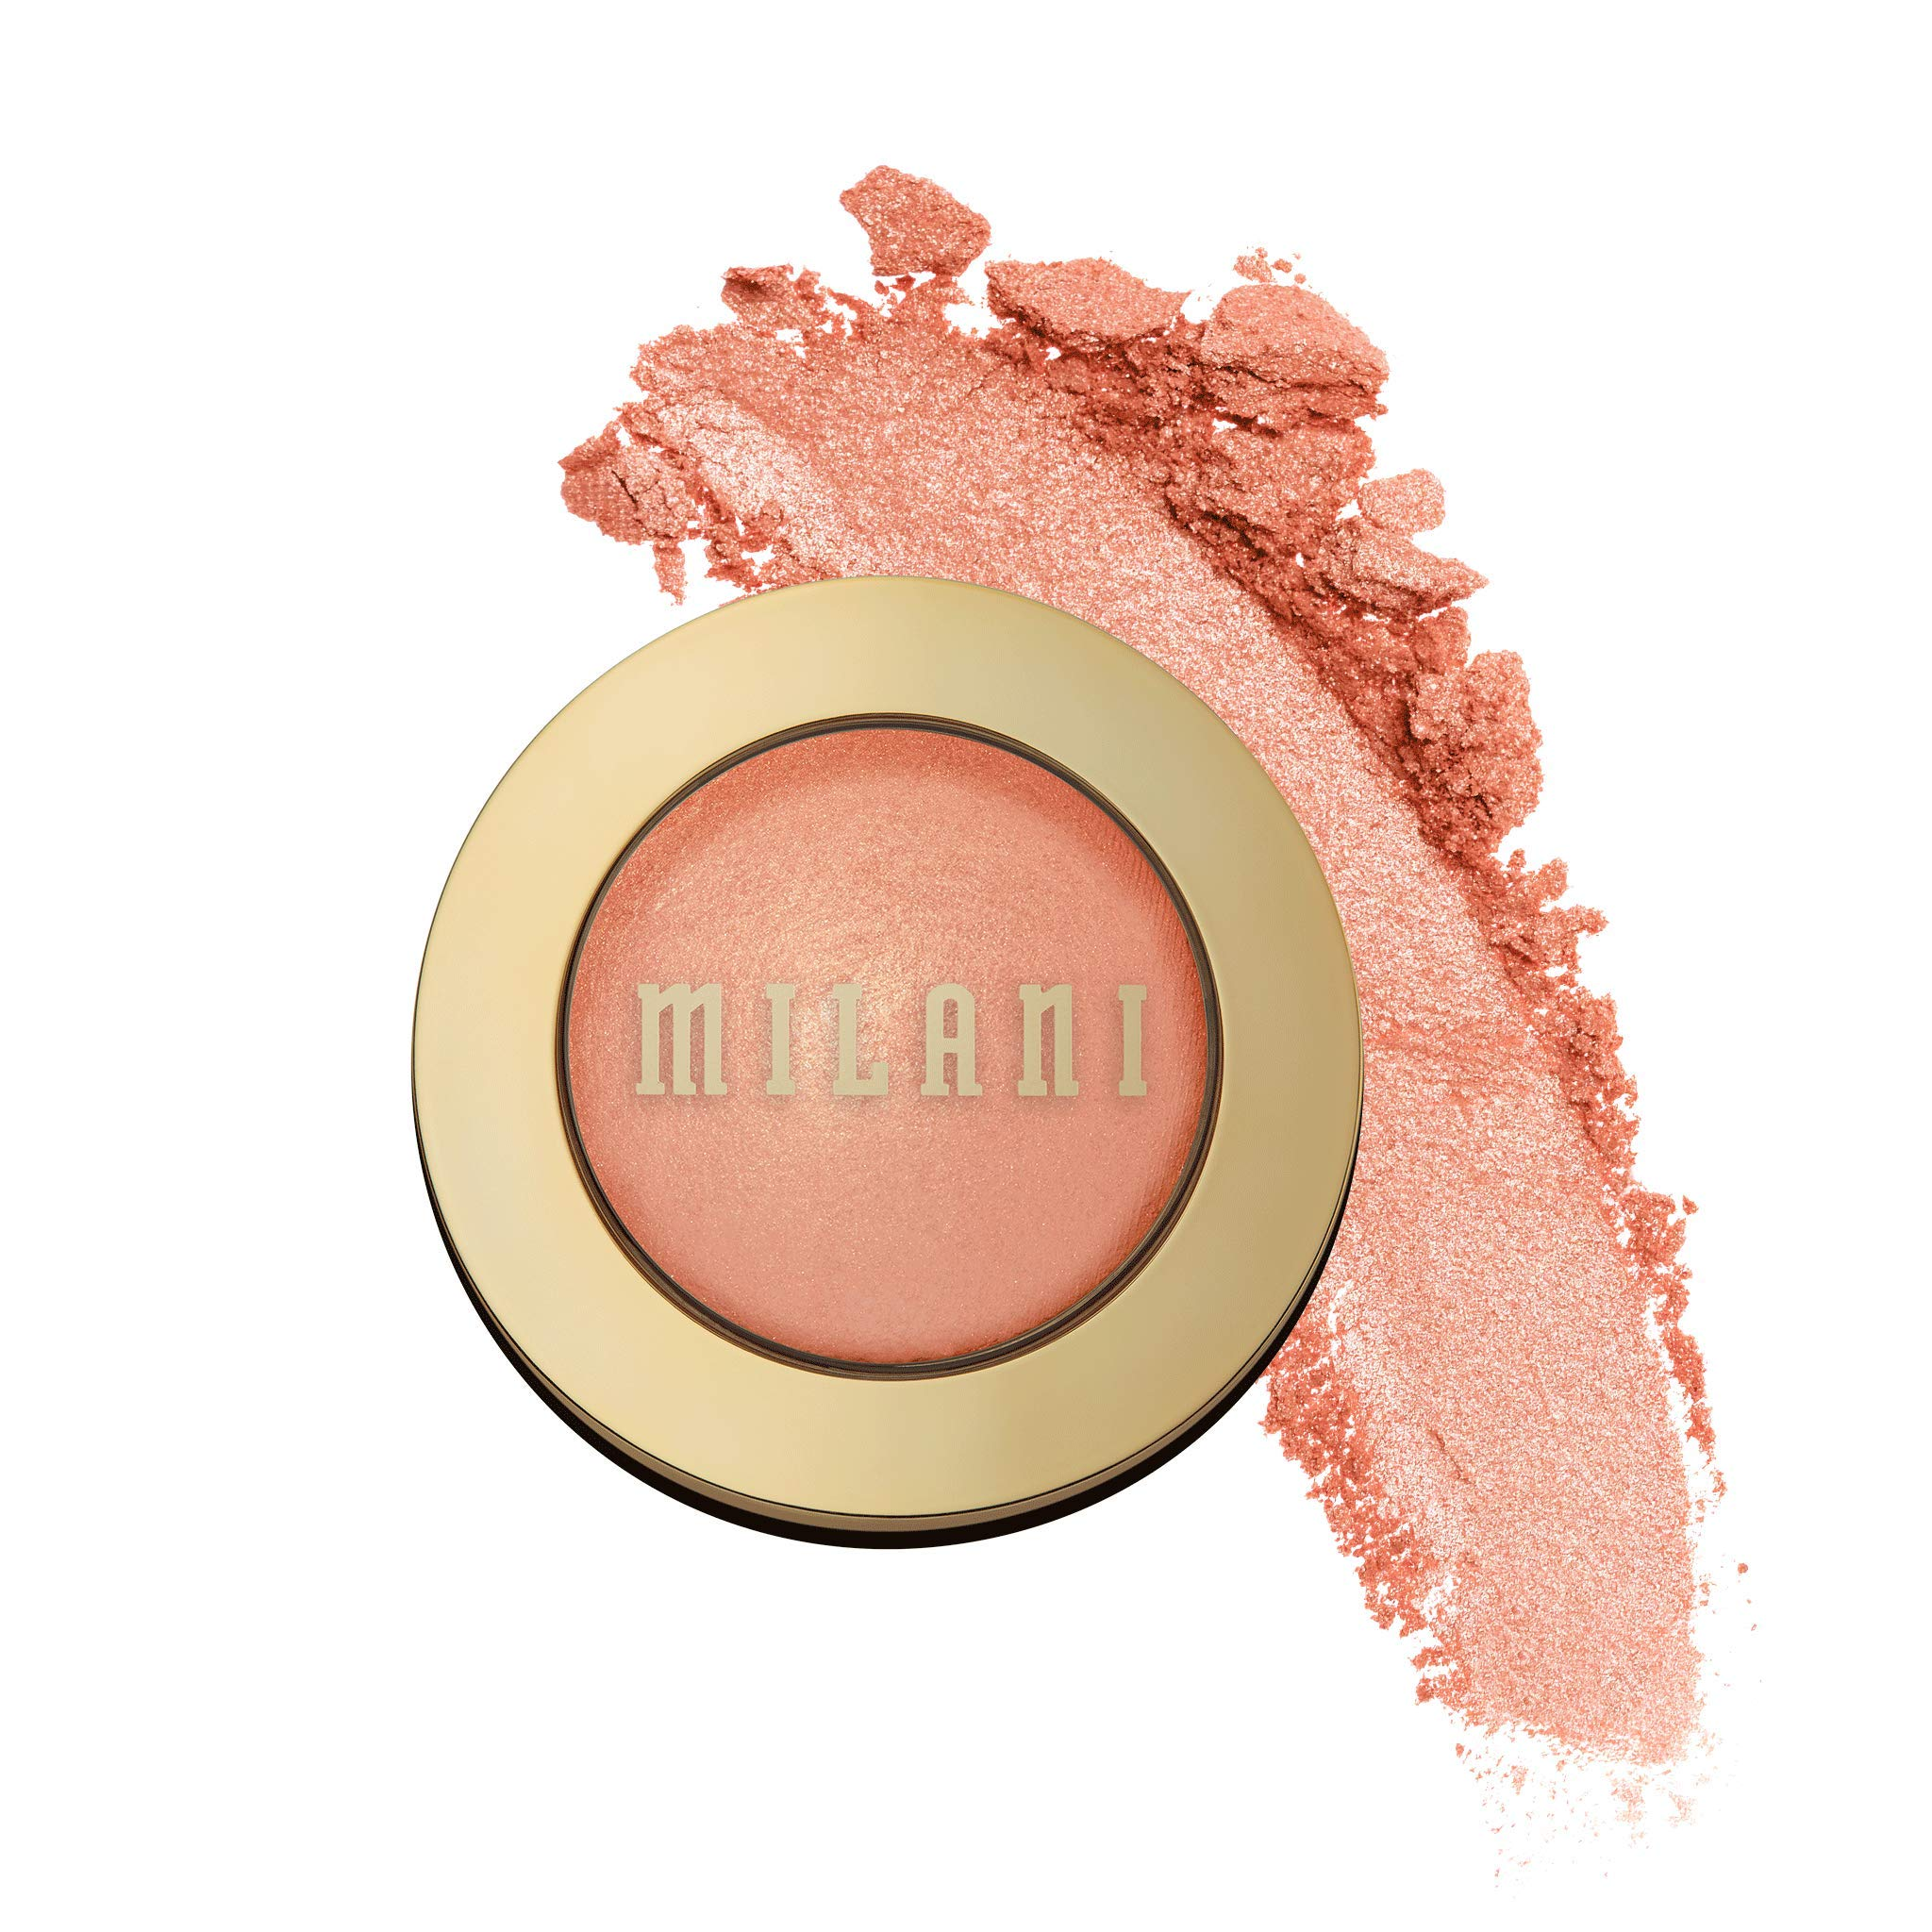 Milani Baked Blush - Luminoso (0.12 Ounce) Cruelty-Free Powder Blush - Shape, Contour & Highlight Face for a Shimmery or Matte Finish